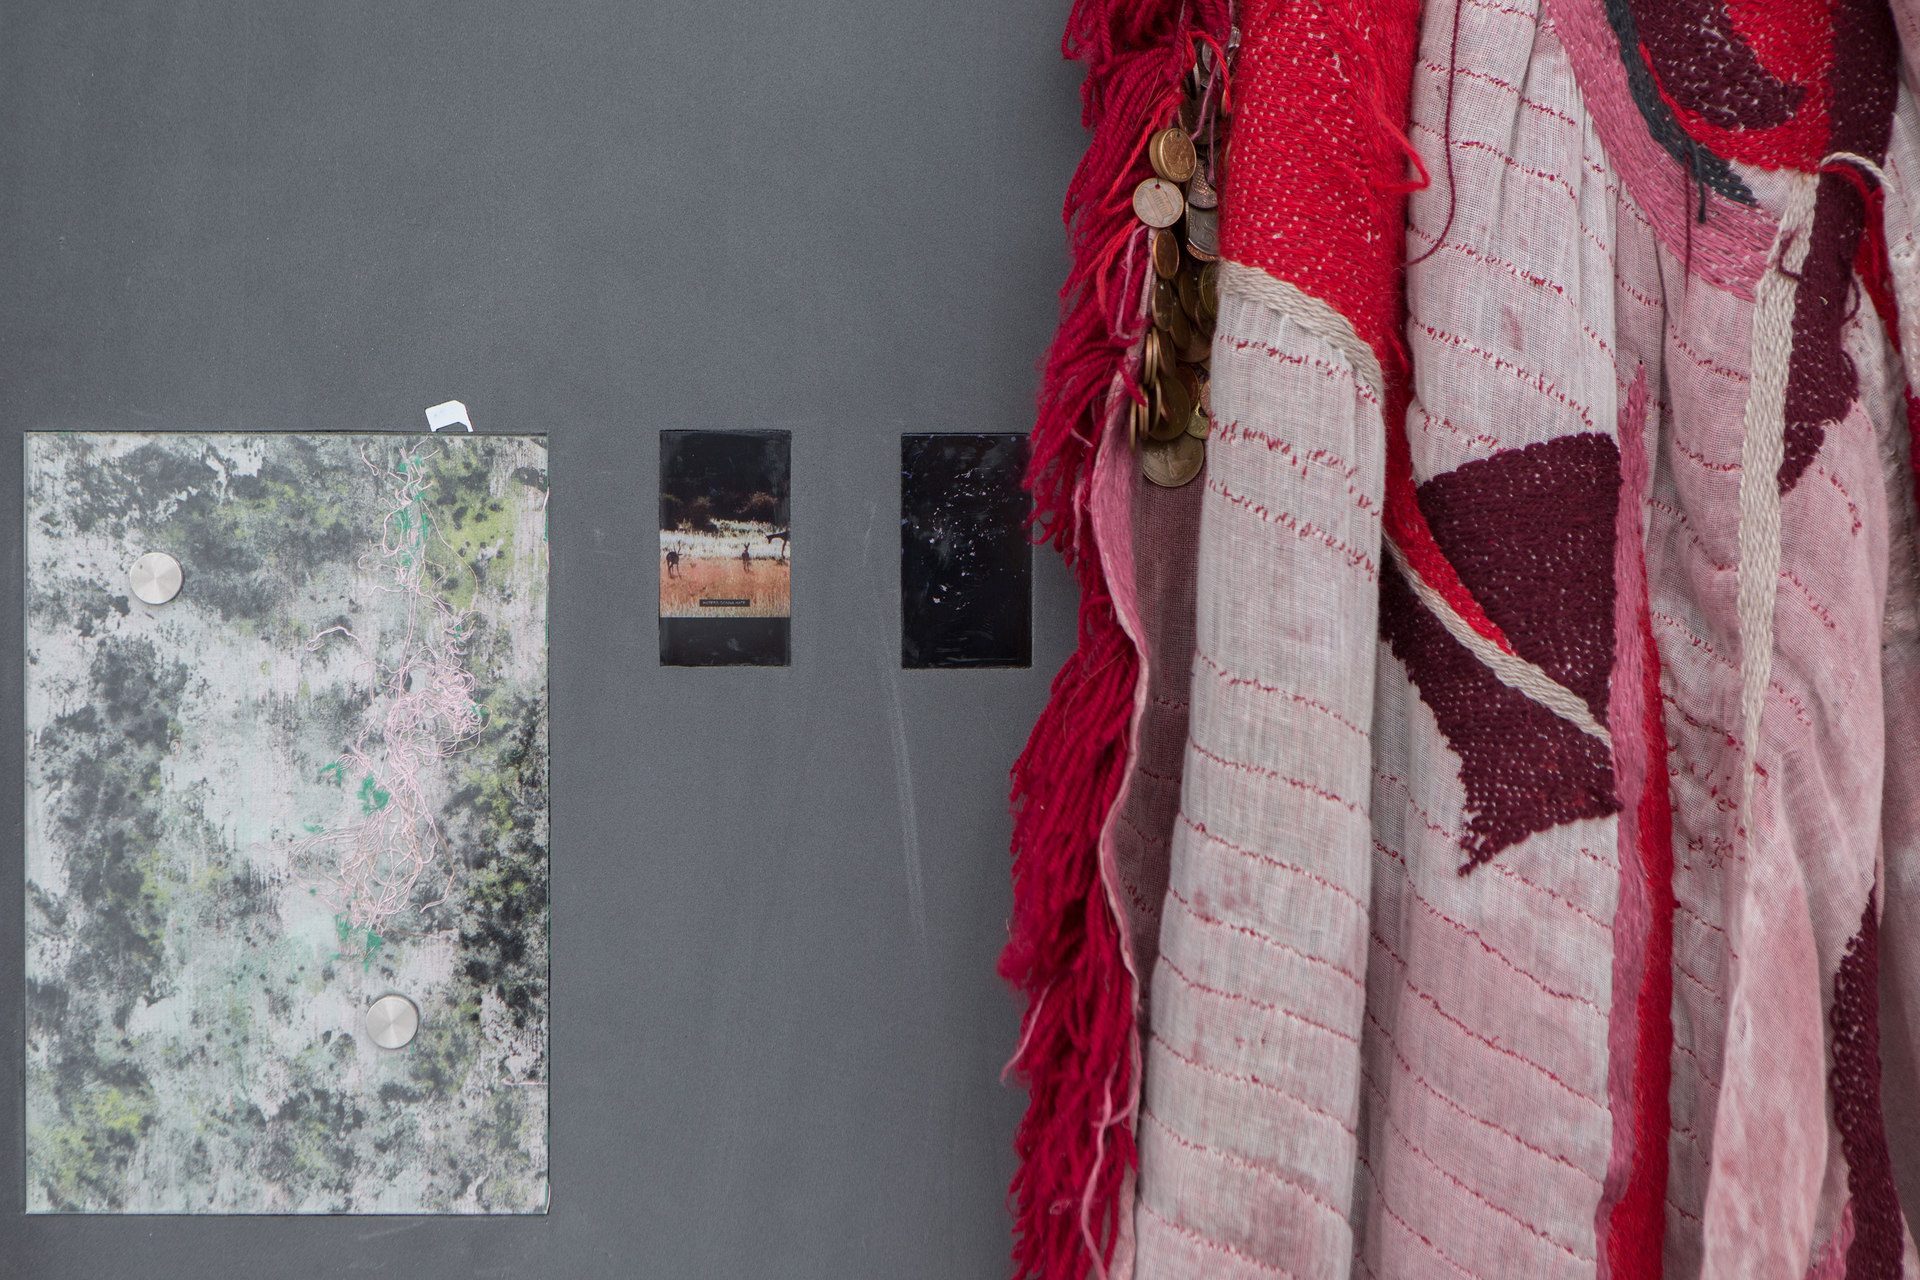 Kate Mackeson & Henrik Potter, 'landlords are not currently collecting rent in self-love', Henrik Potter, 2016 Detail, Cell Project Space